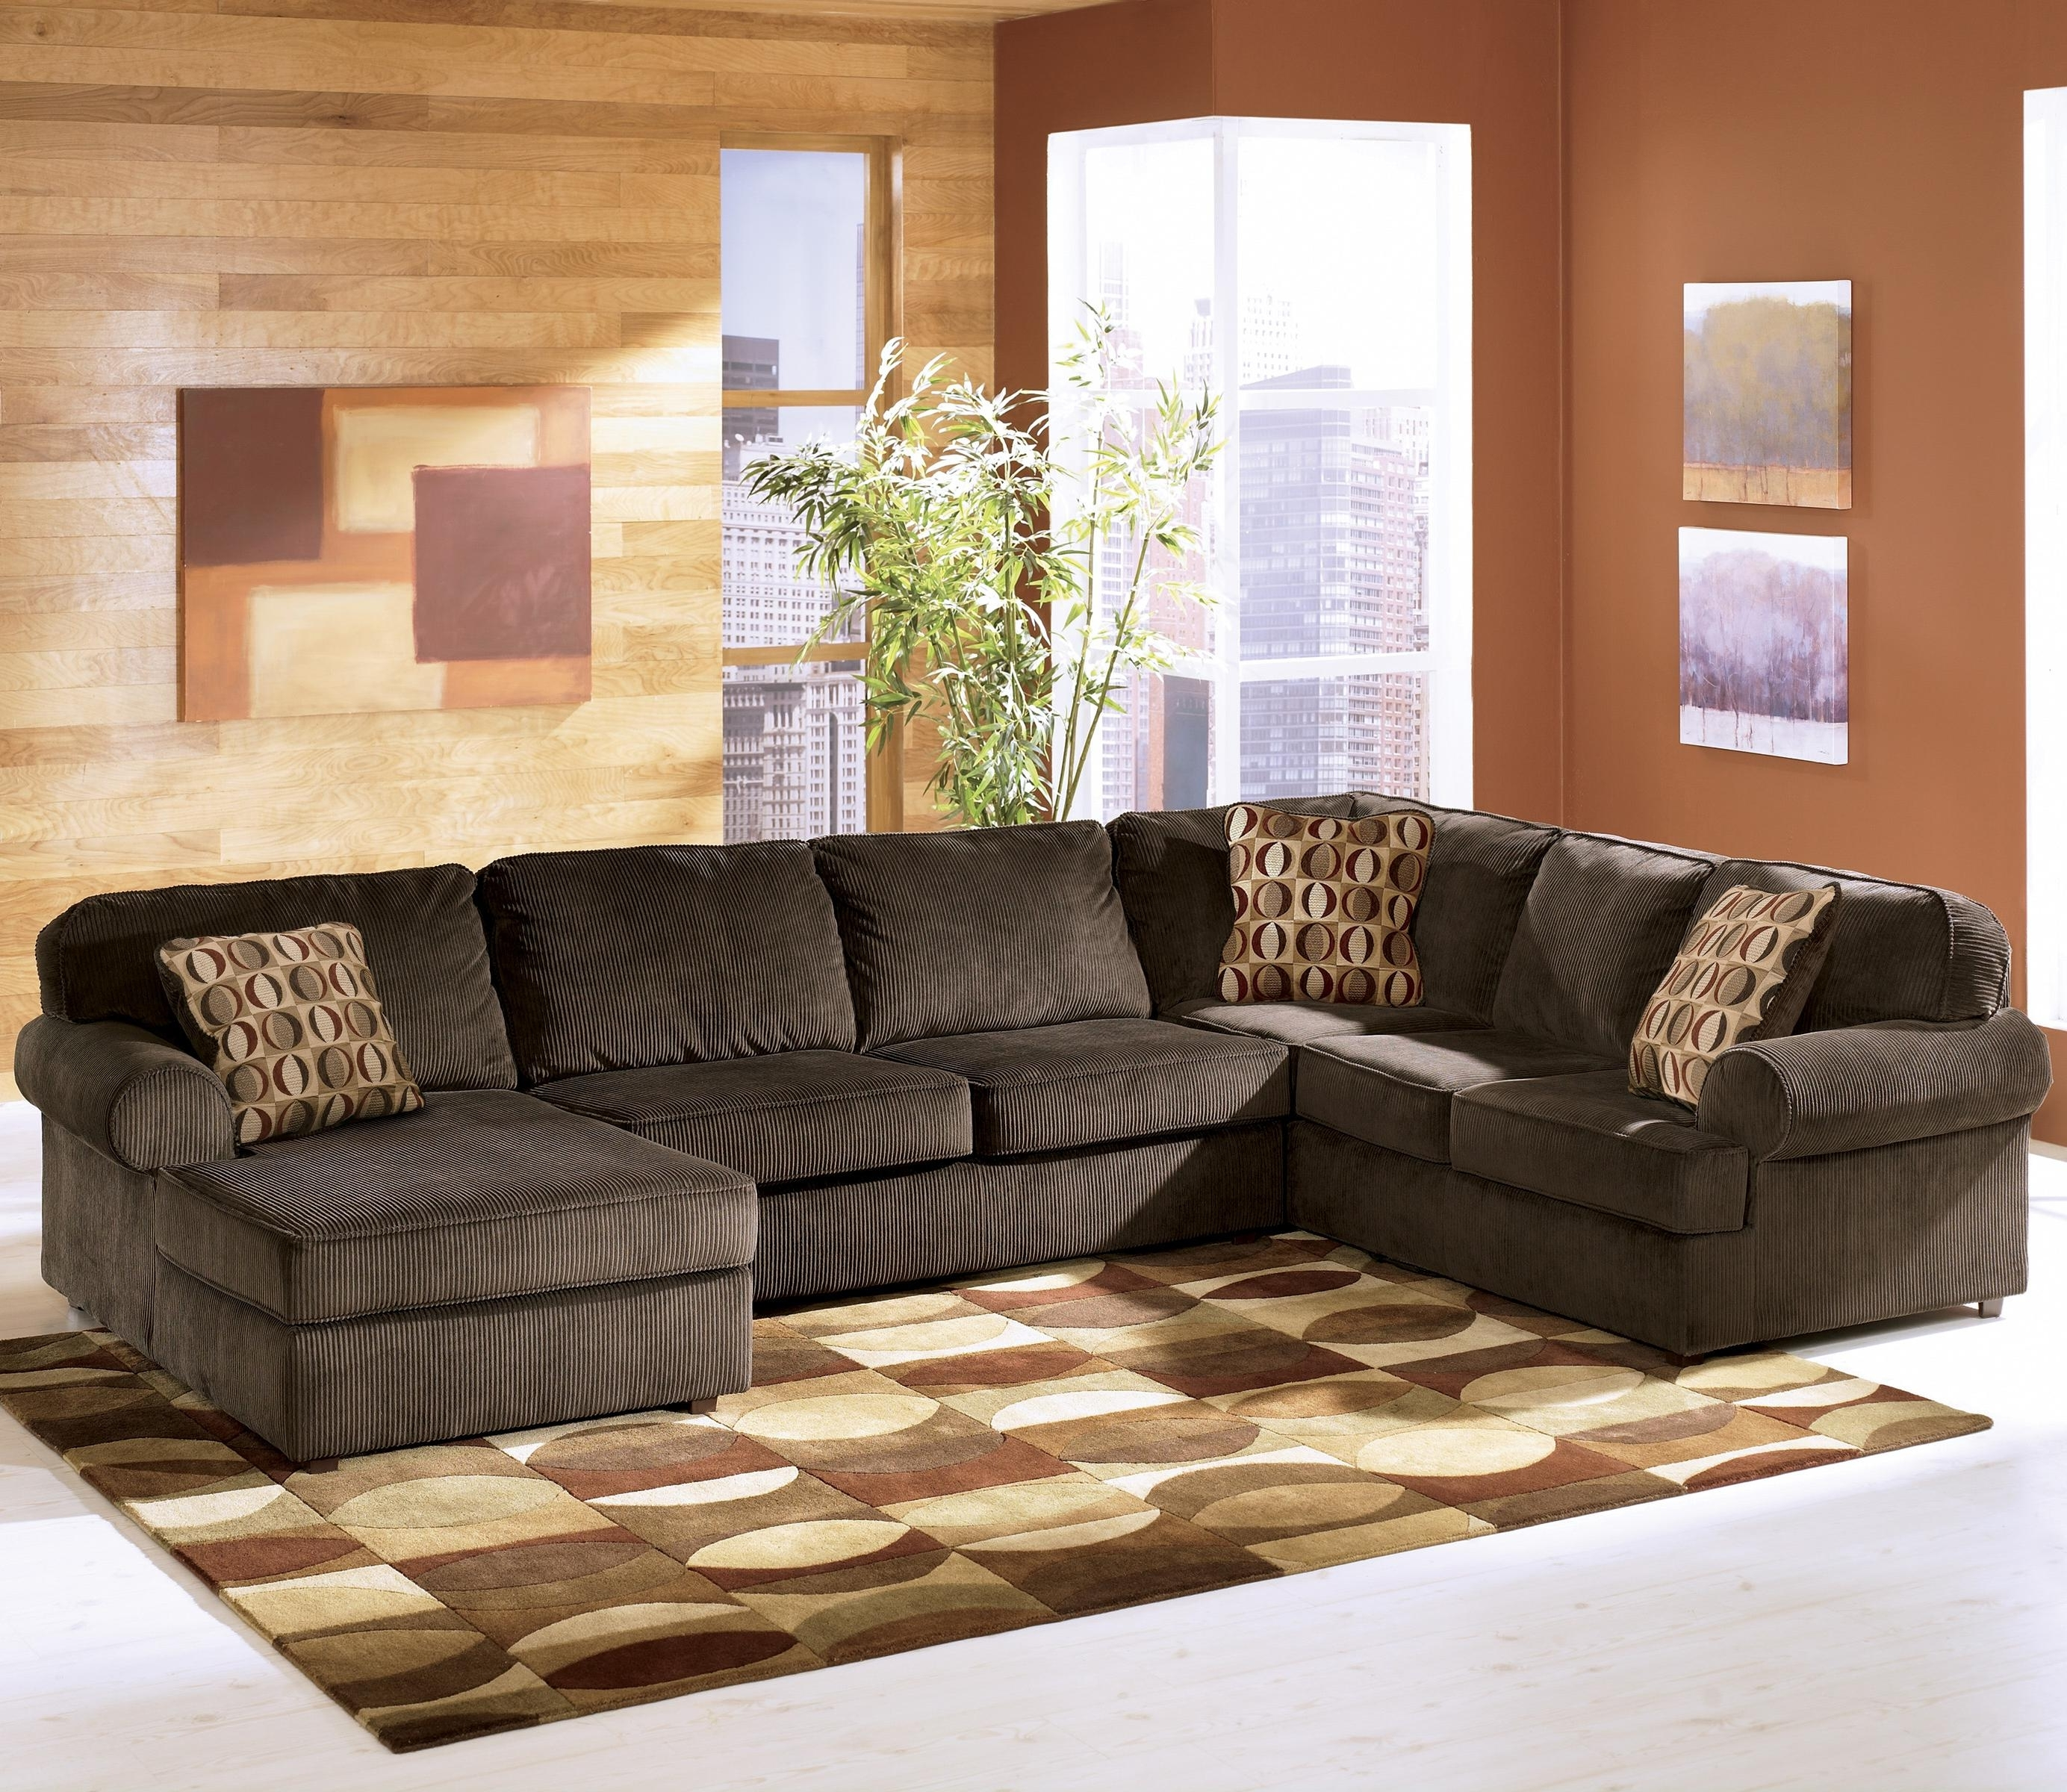 Eau Claire Wi Sectional Sofas With Latest Furniture (View 2 of 20)